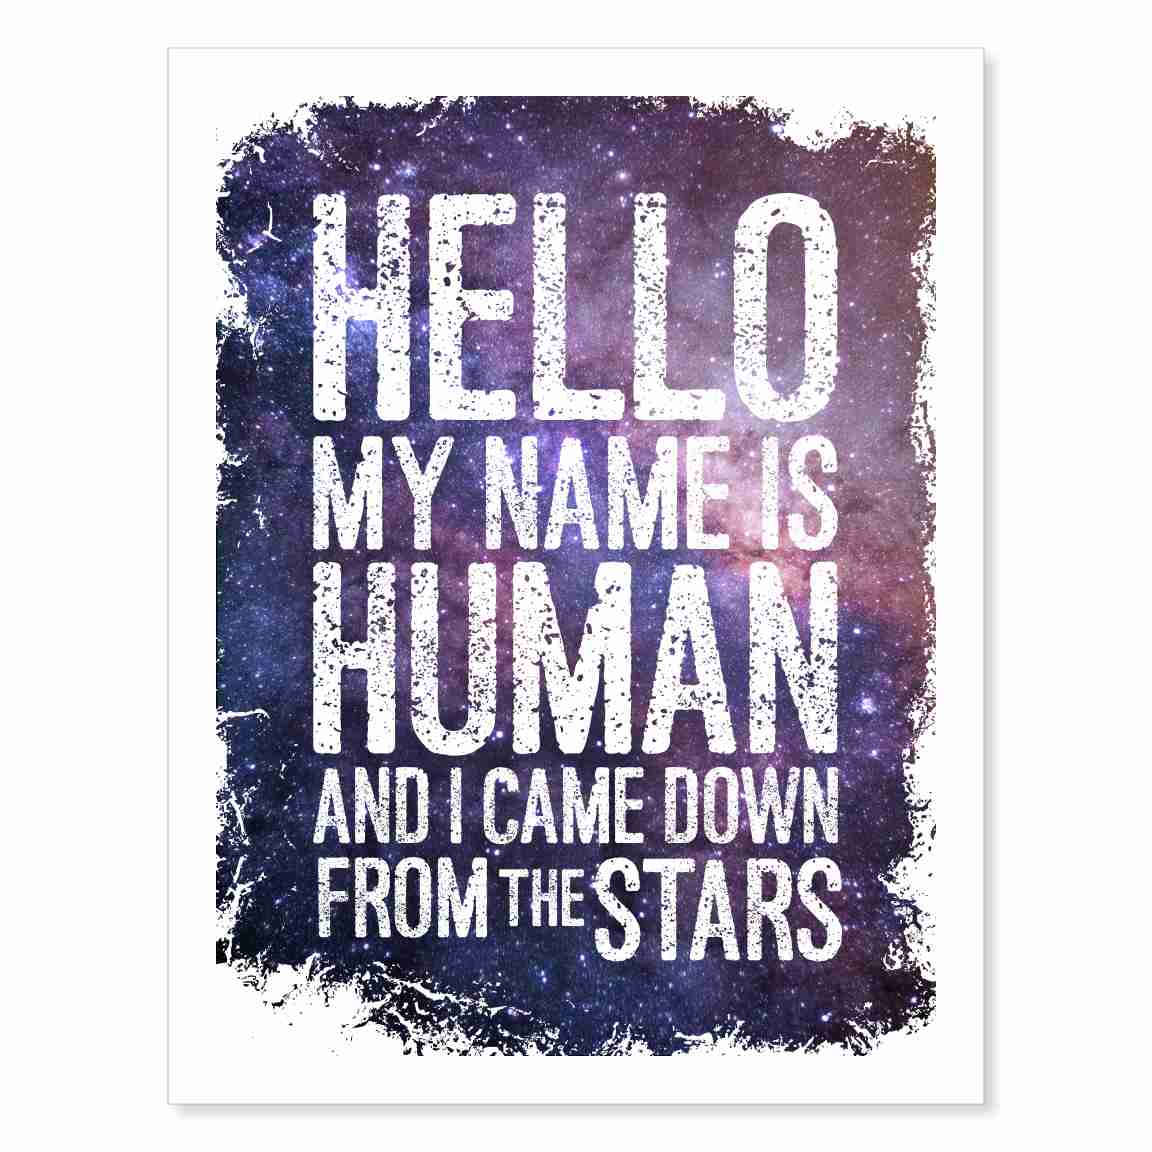 ddbe59884f5129 Song Lyrics Wall Art - My Name Is Human - Typography Art Galaxy Print with  White Lettering and Stars in Purple Pink Blue Black Space